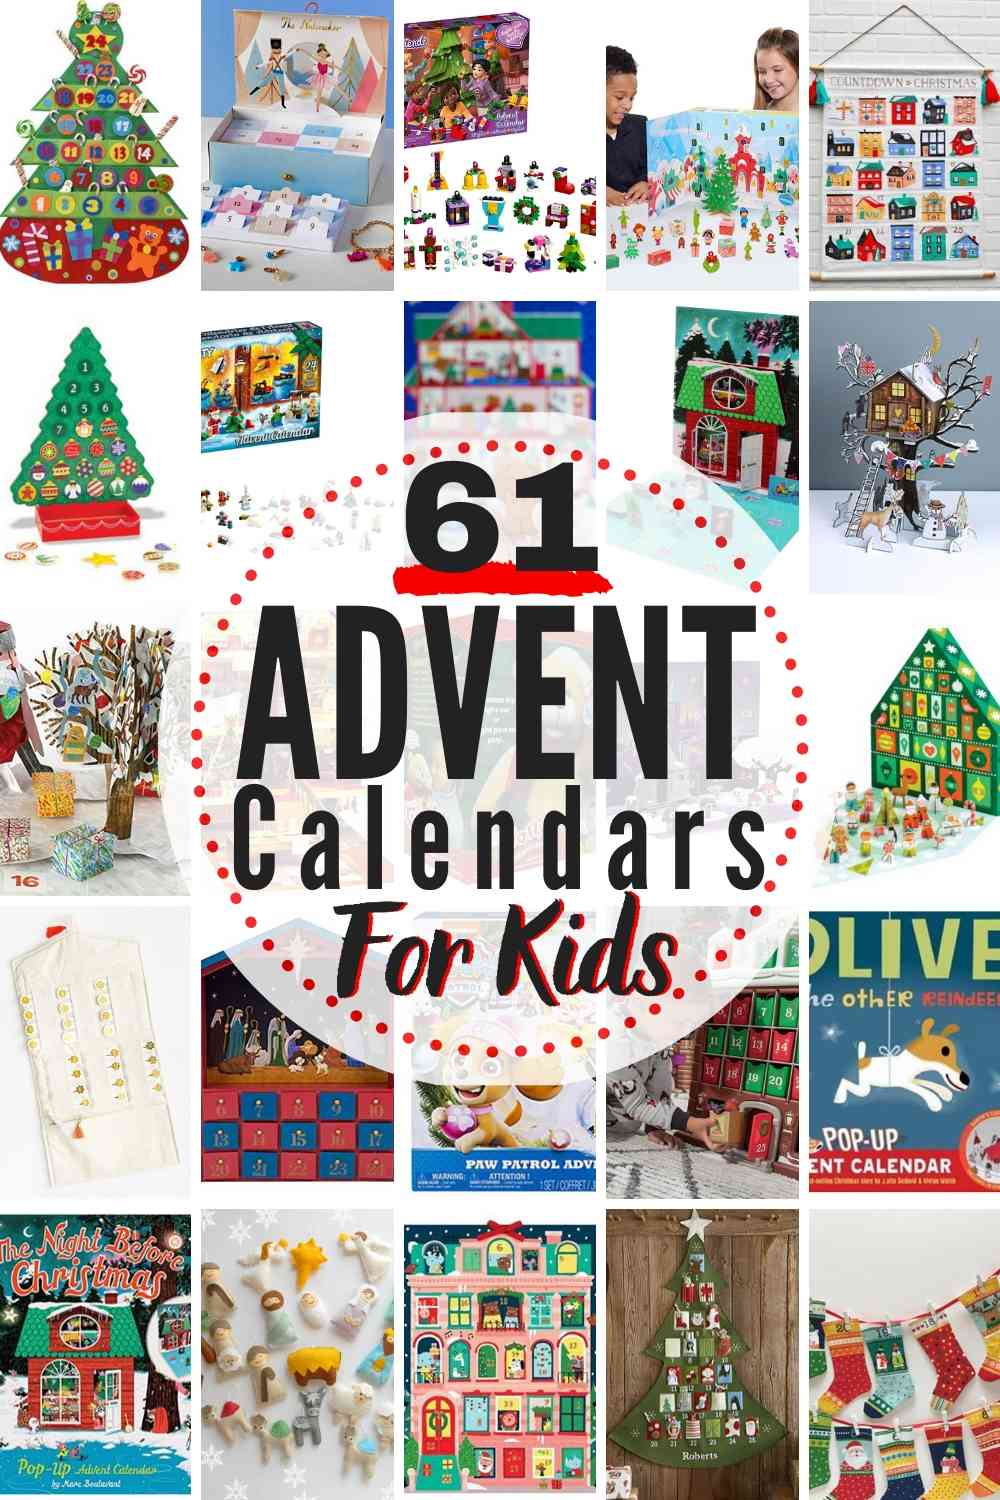 61 BEST Advent Calendars for Kids!! Opening the advent calendar each day is a wonderful Christmas tradition that ushers in joy and excitement each holiday season! Adorable options for advent calendars geared towards kids, but will be loved by the whole family! #Advent #AdventCalendar #Christmas #ChristmasTradition #familytradition #shoppingguide #AdventCalendars #ChristmasTraditionIdeas